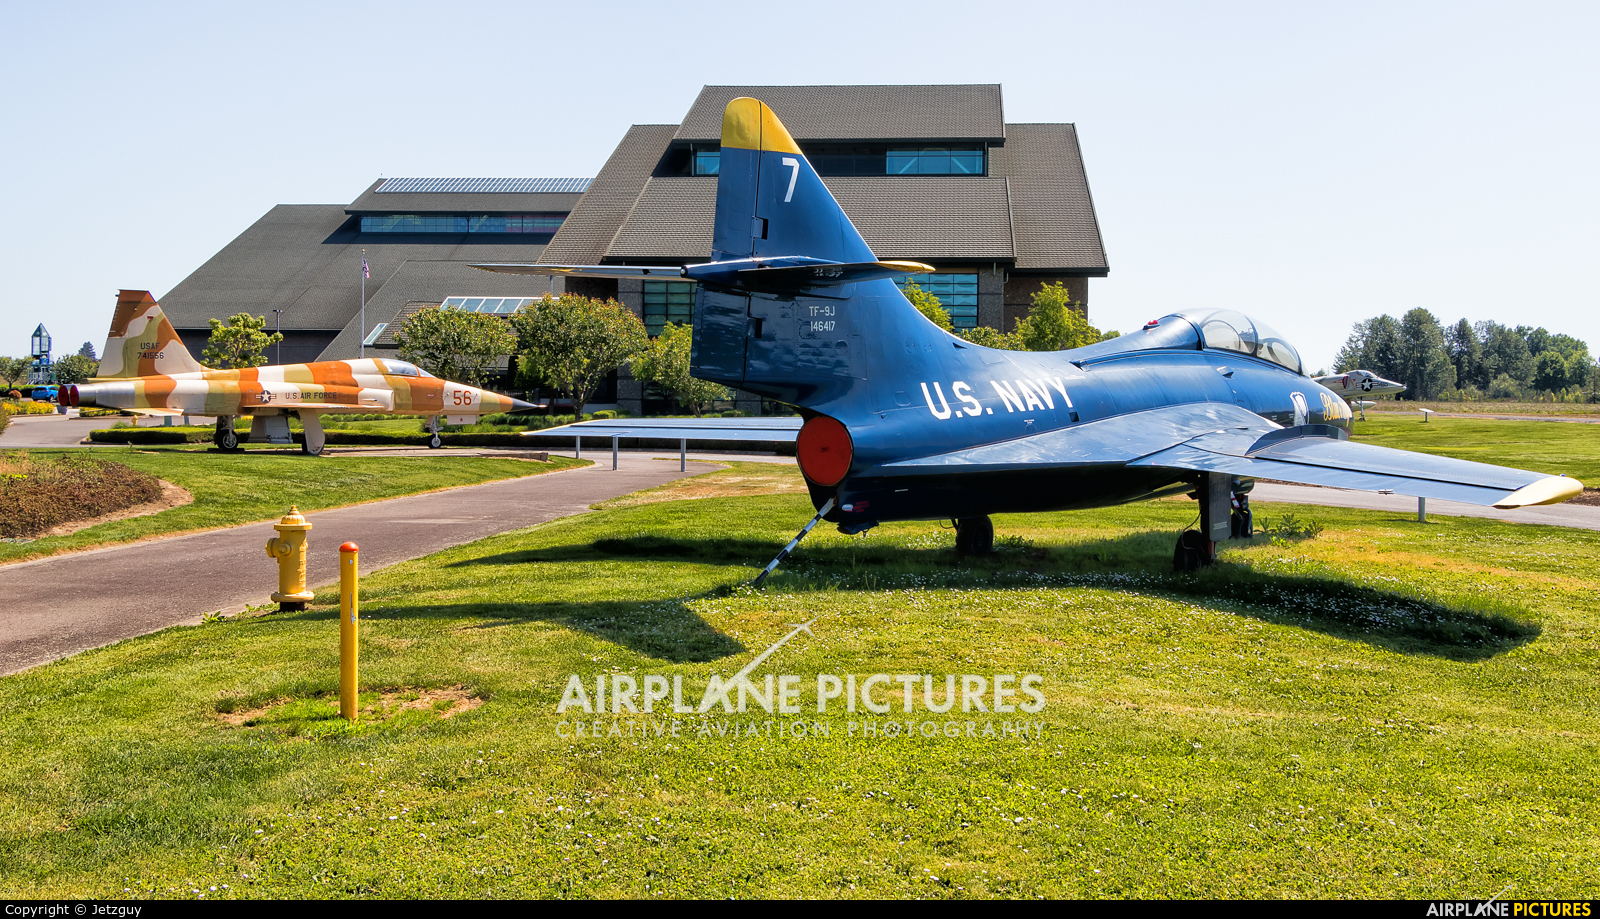 USA - Navy : Blue Angels 146417 aircraft at McMinnville - Evergreen Aviation & Space Museum